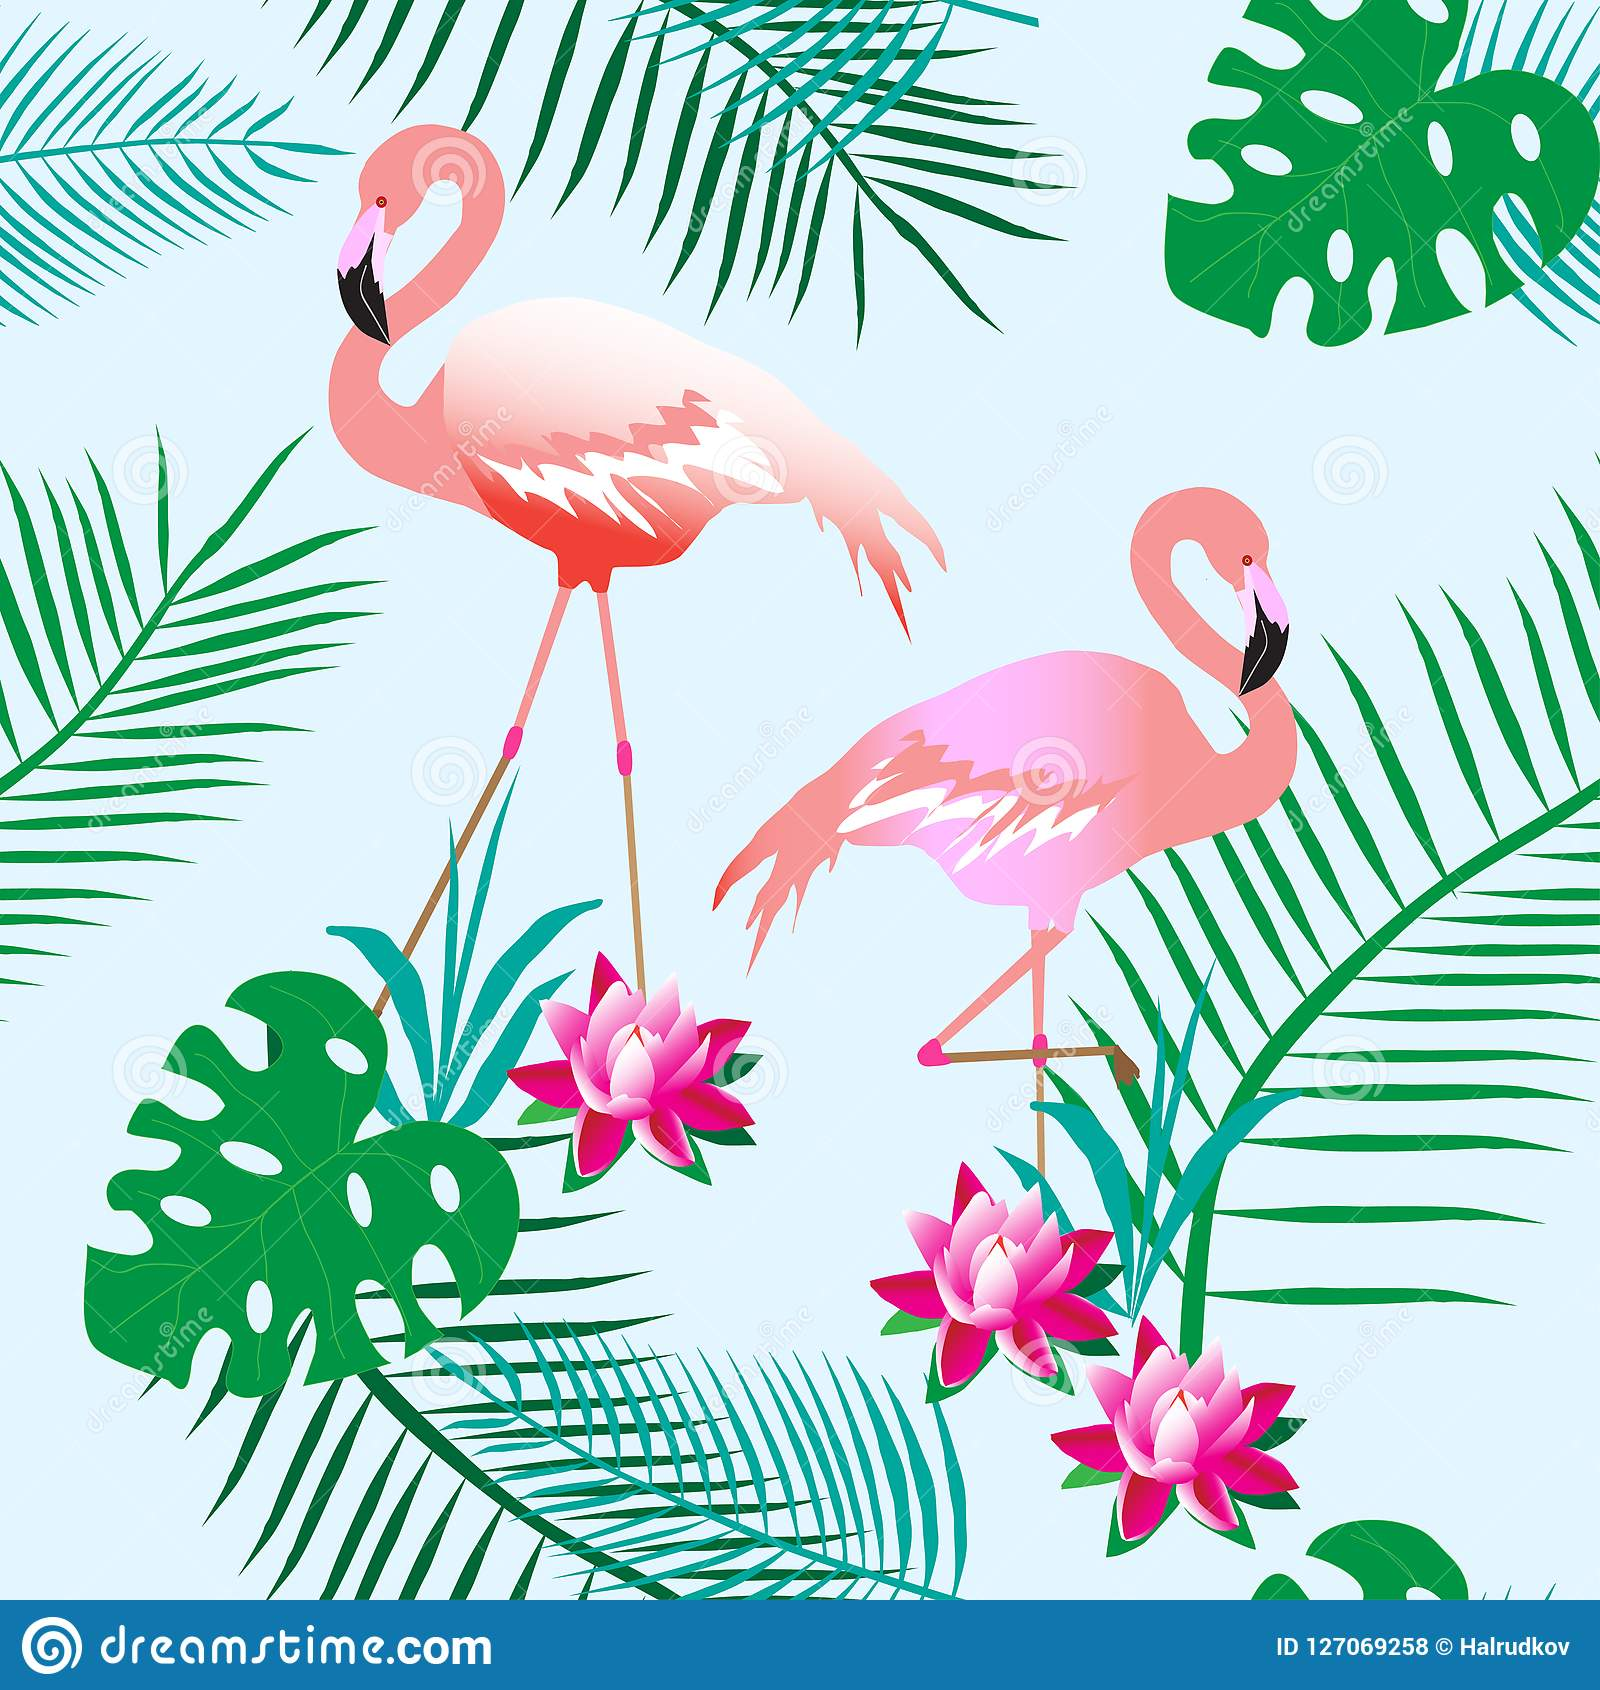 Charming pink flamingos. Tropical plants. Light background. Seamless pattern. Can be used for material, paper.